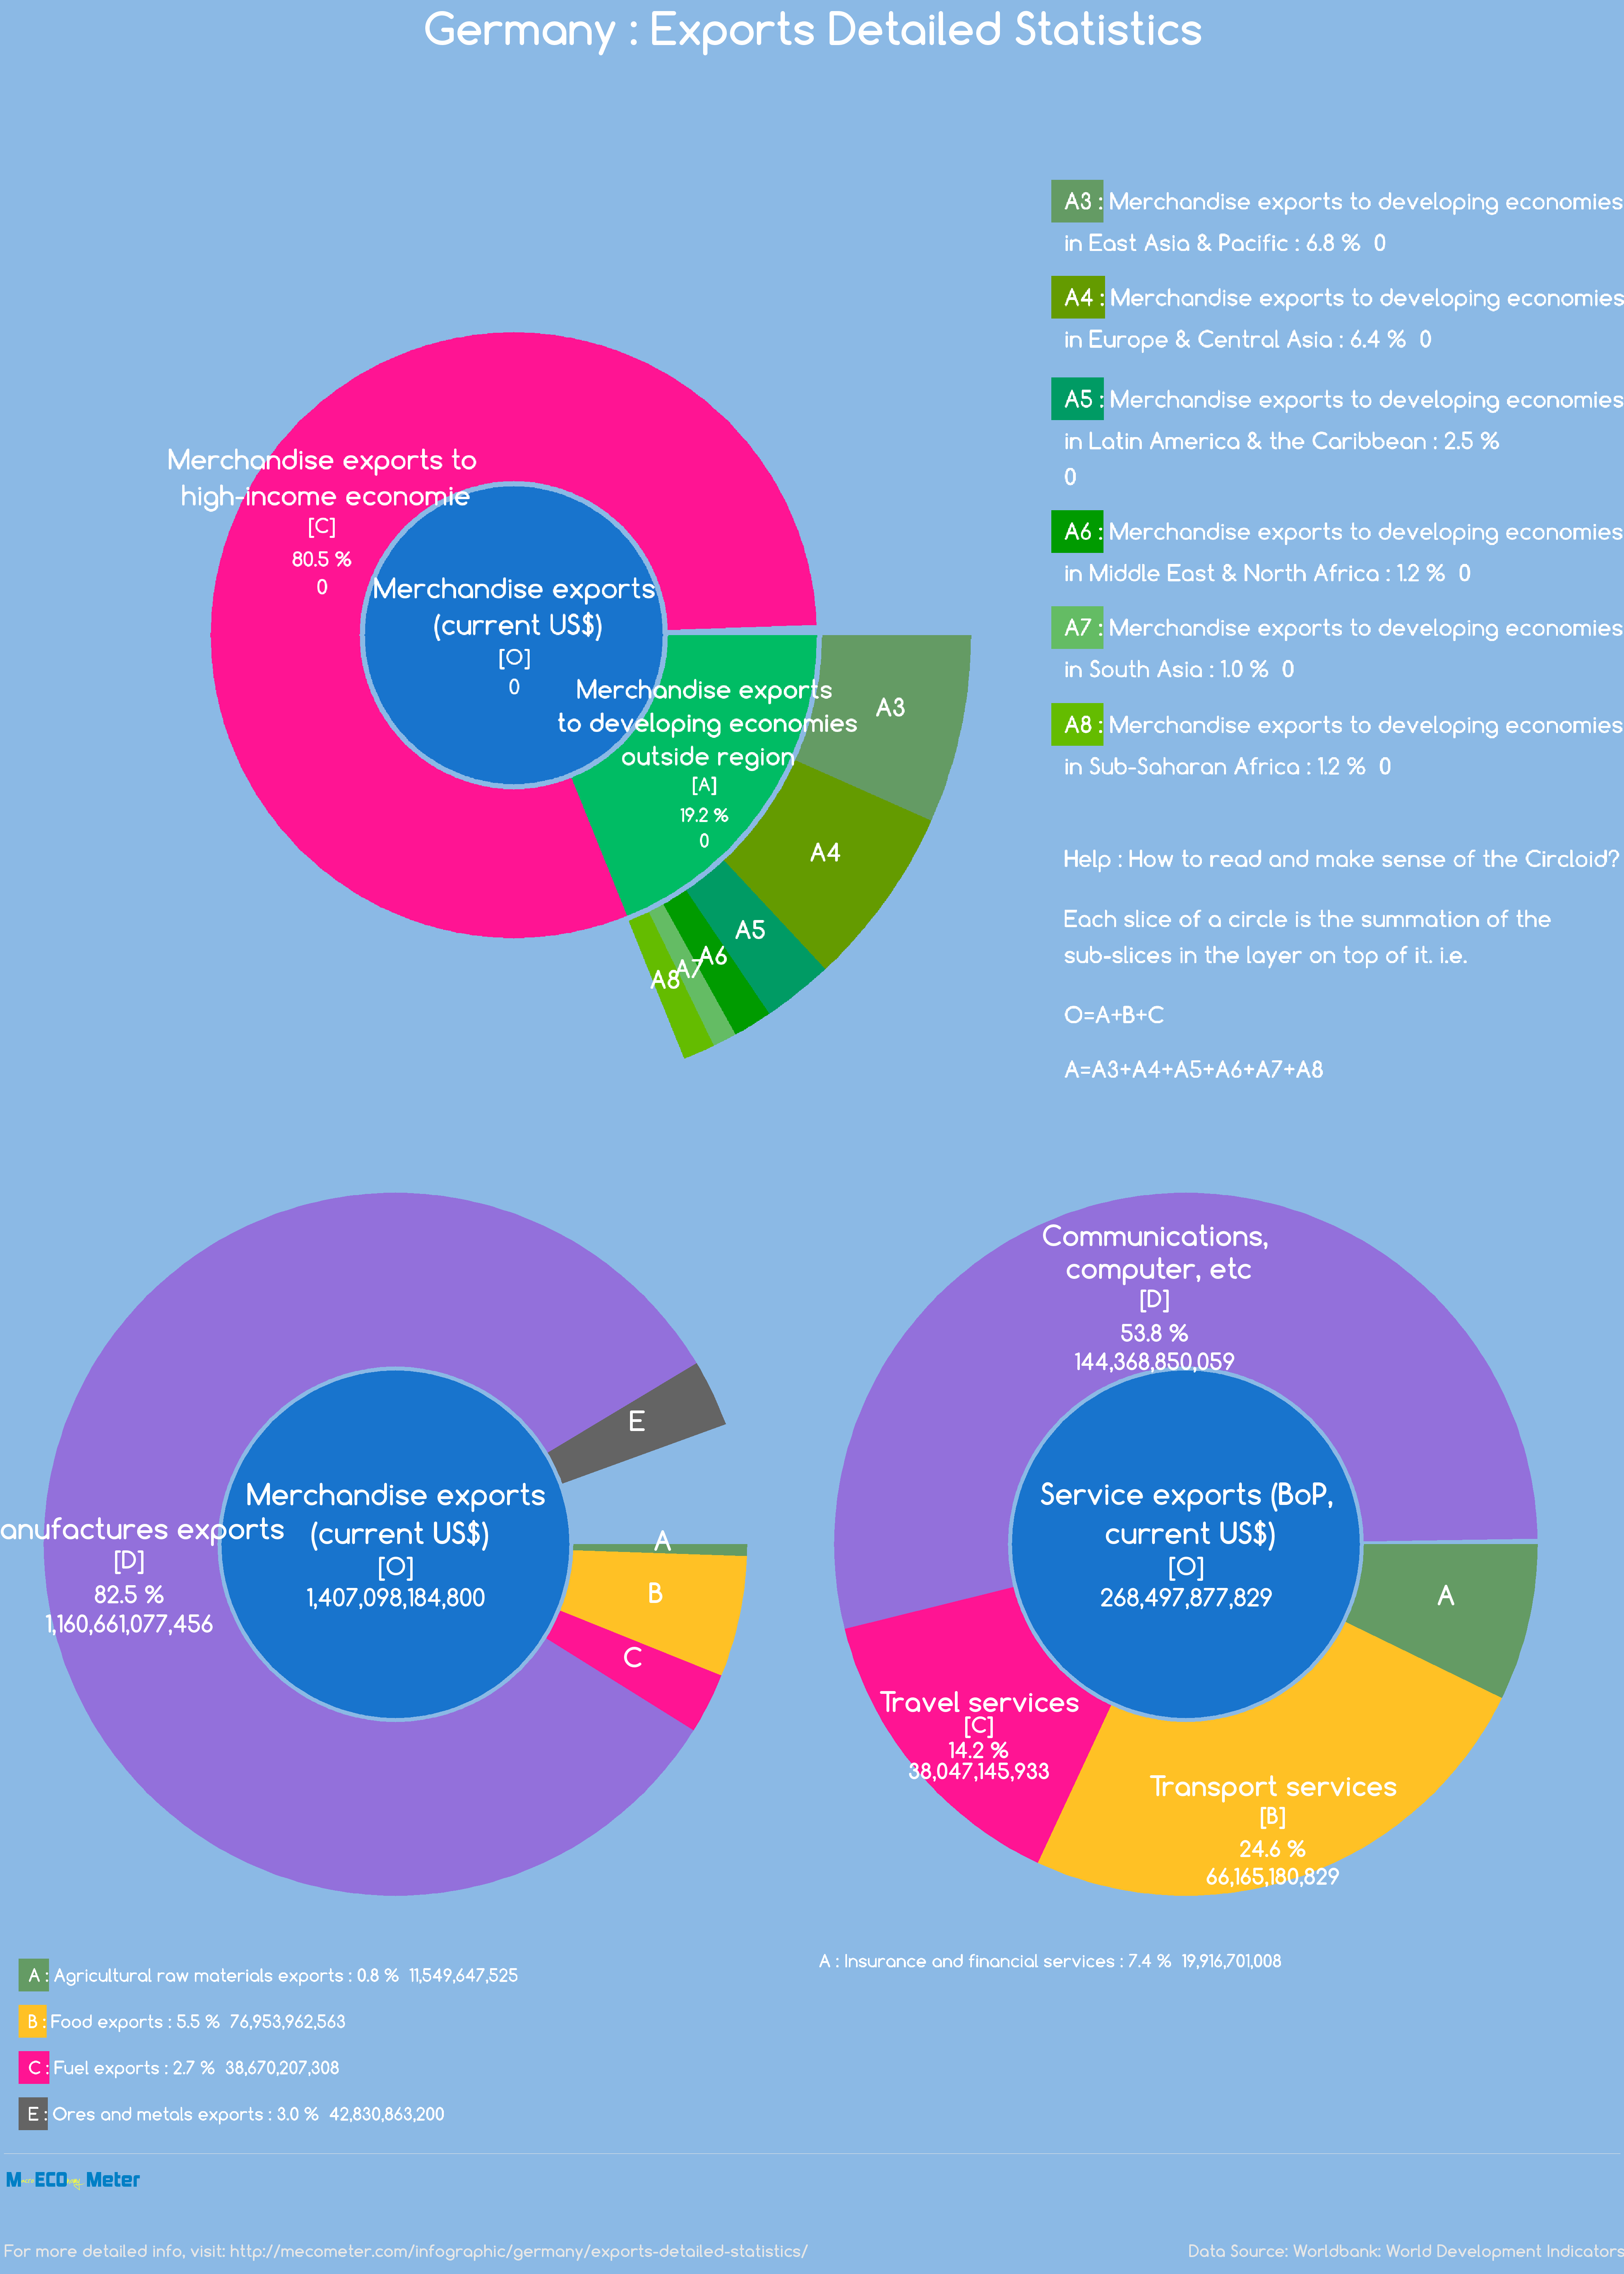 Germany : Exports Detailed Statistics